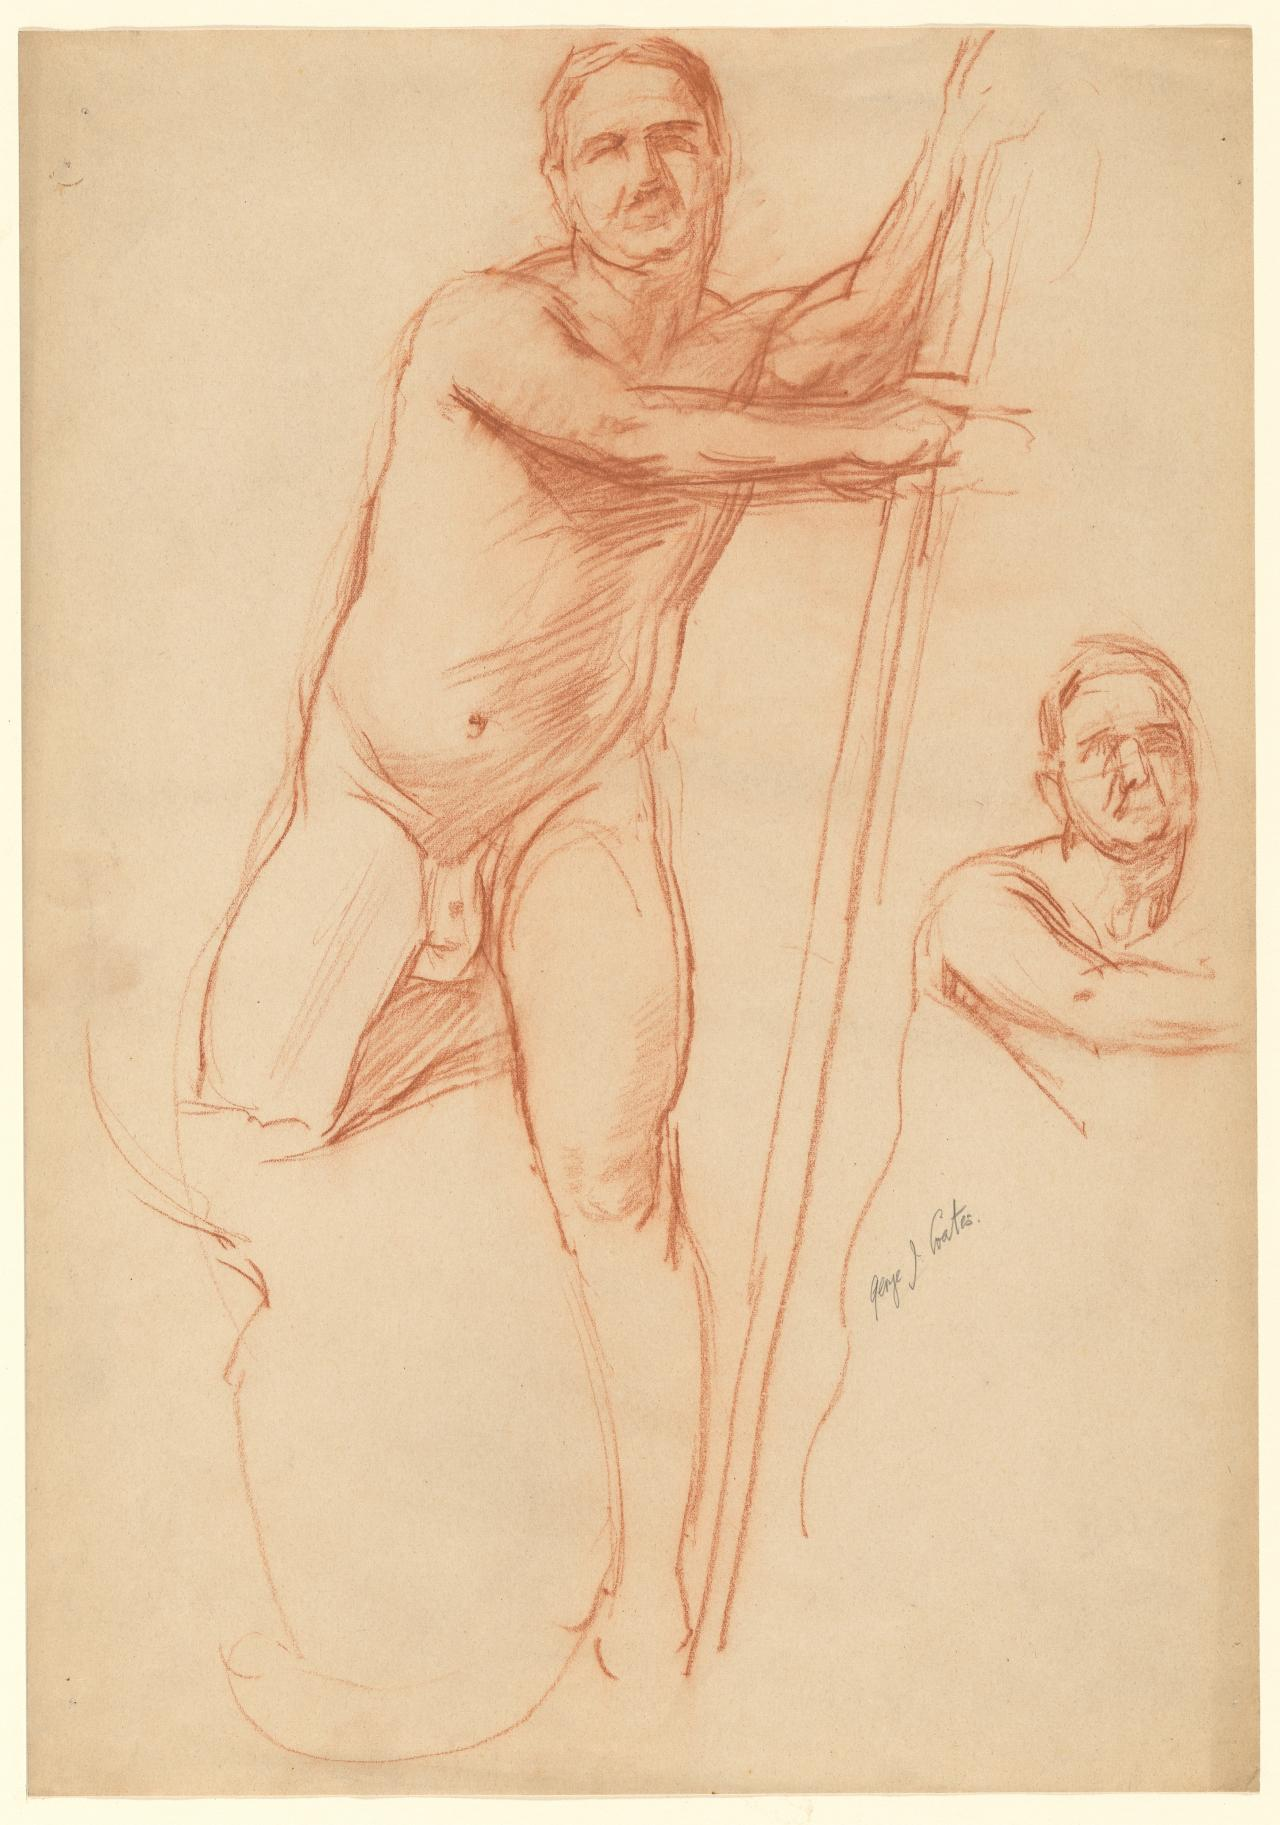 Two studies of a nude man